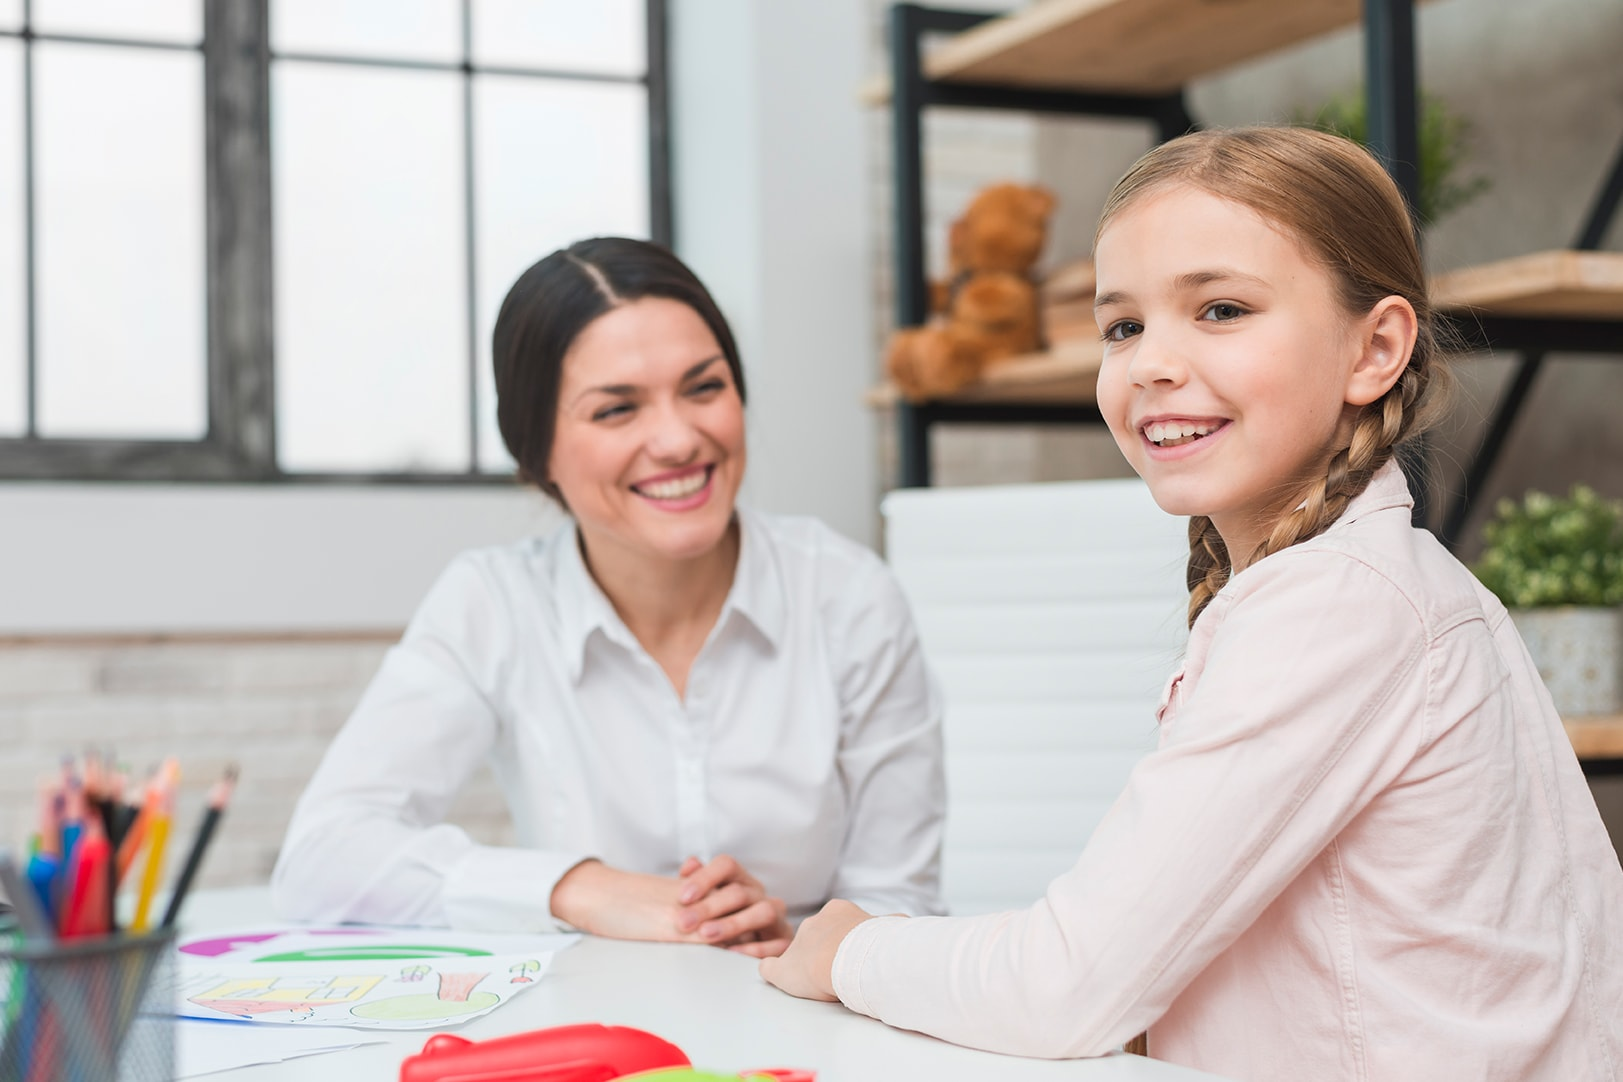 Child psychologist from Mindsight Clinic with a child for child counselling